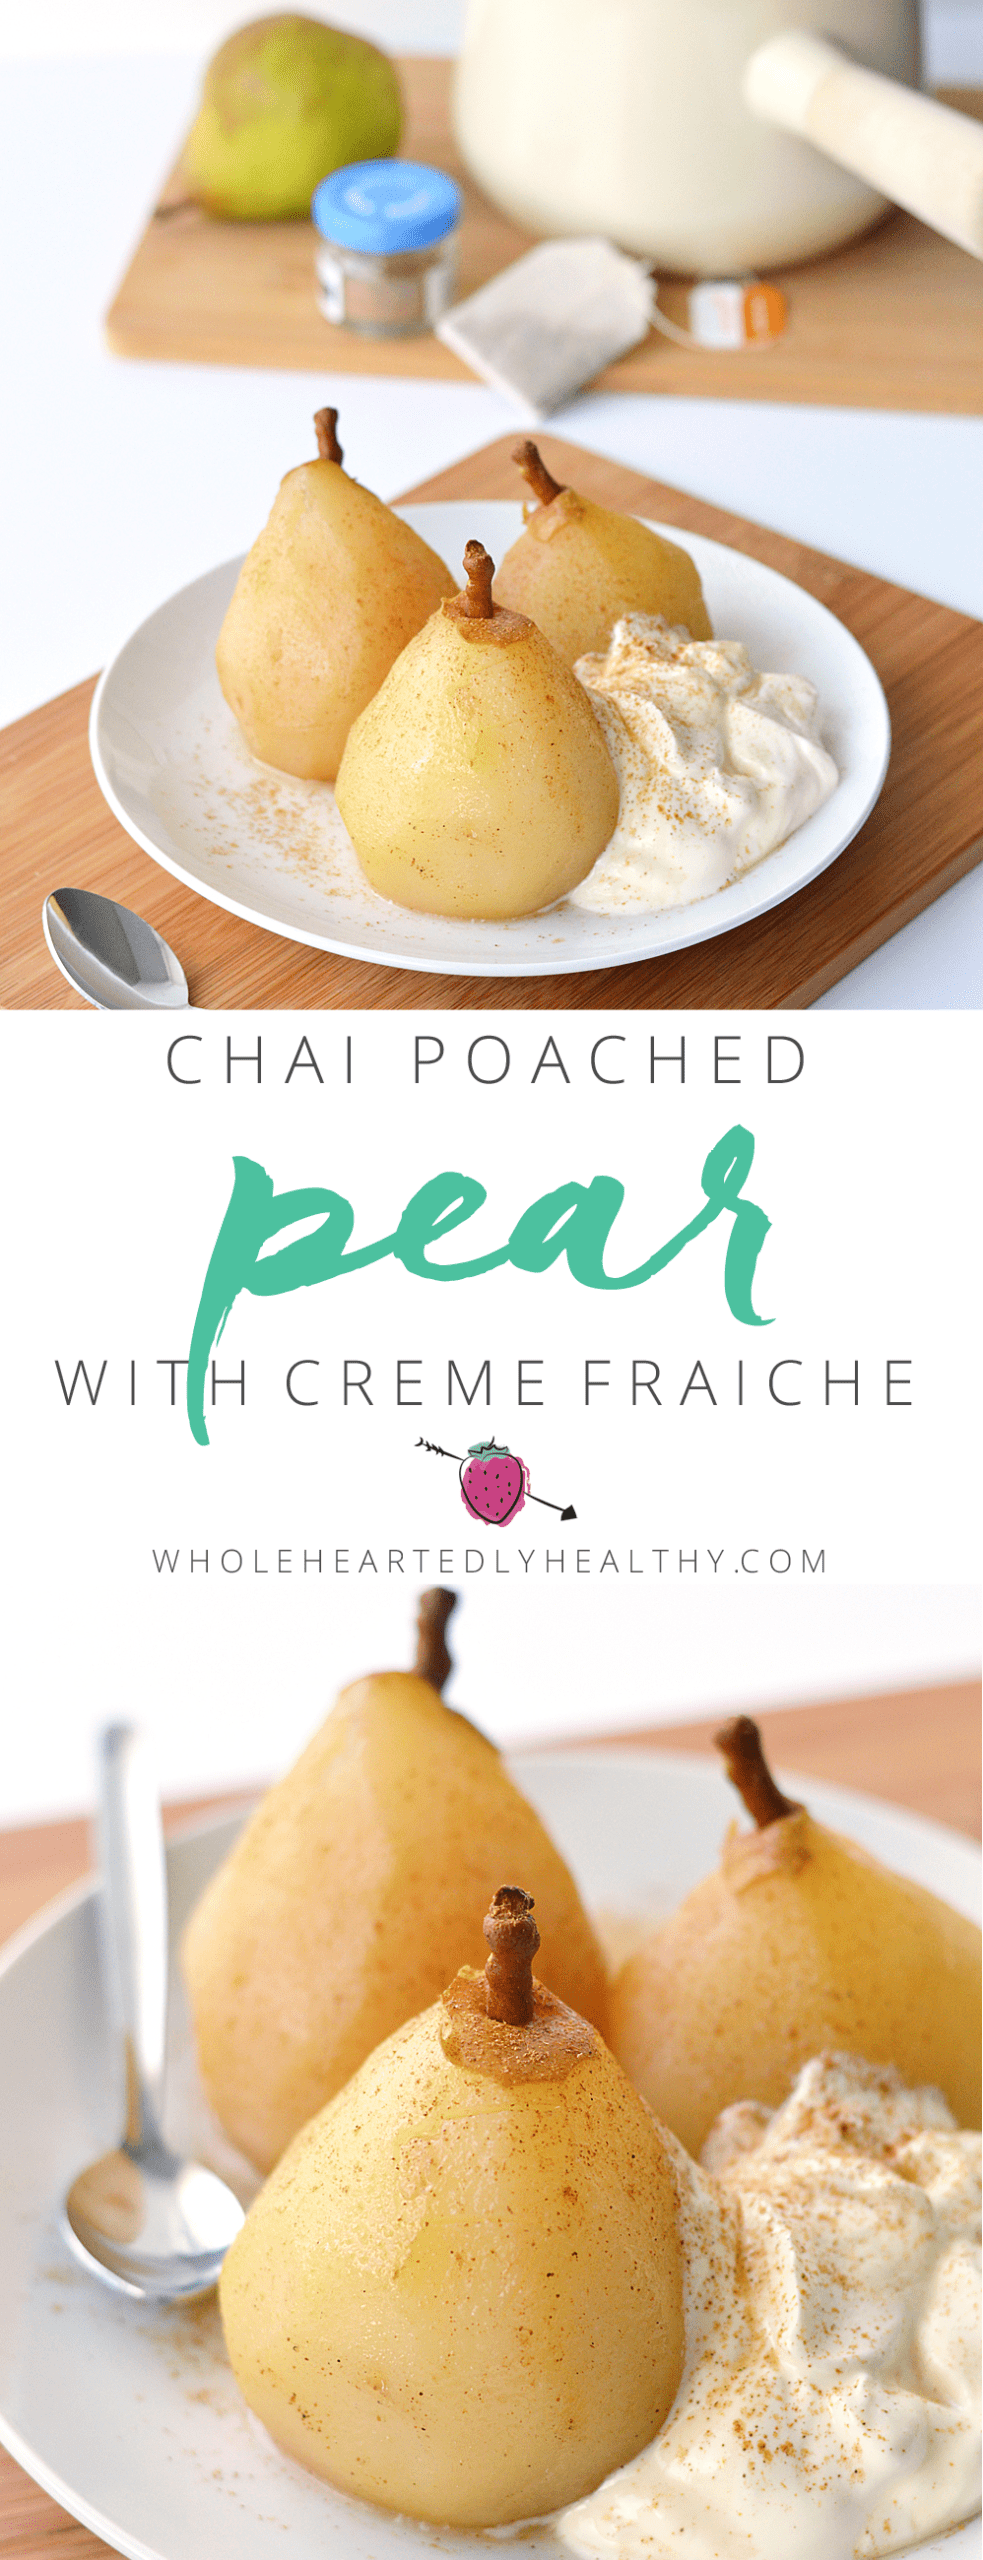 chai-poached-pears